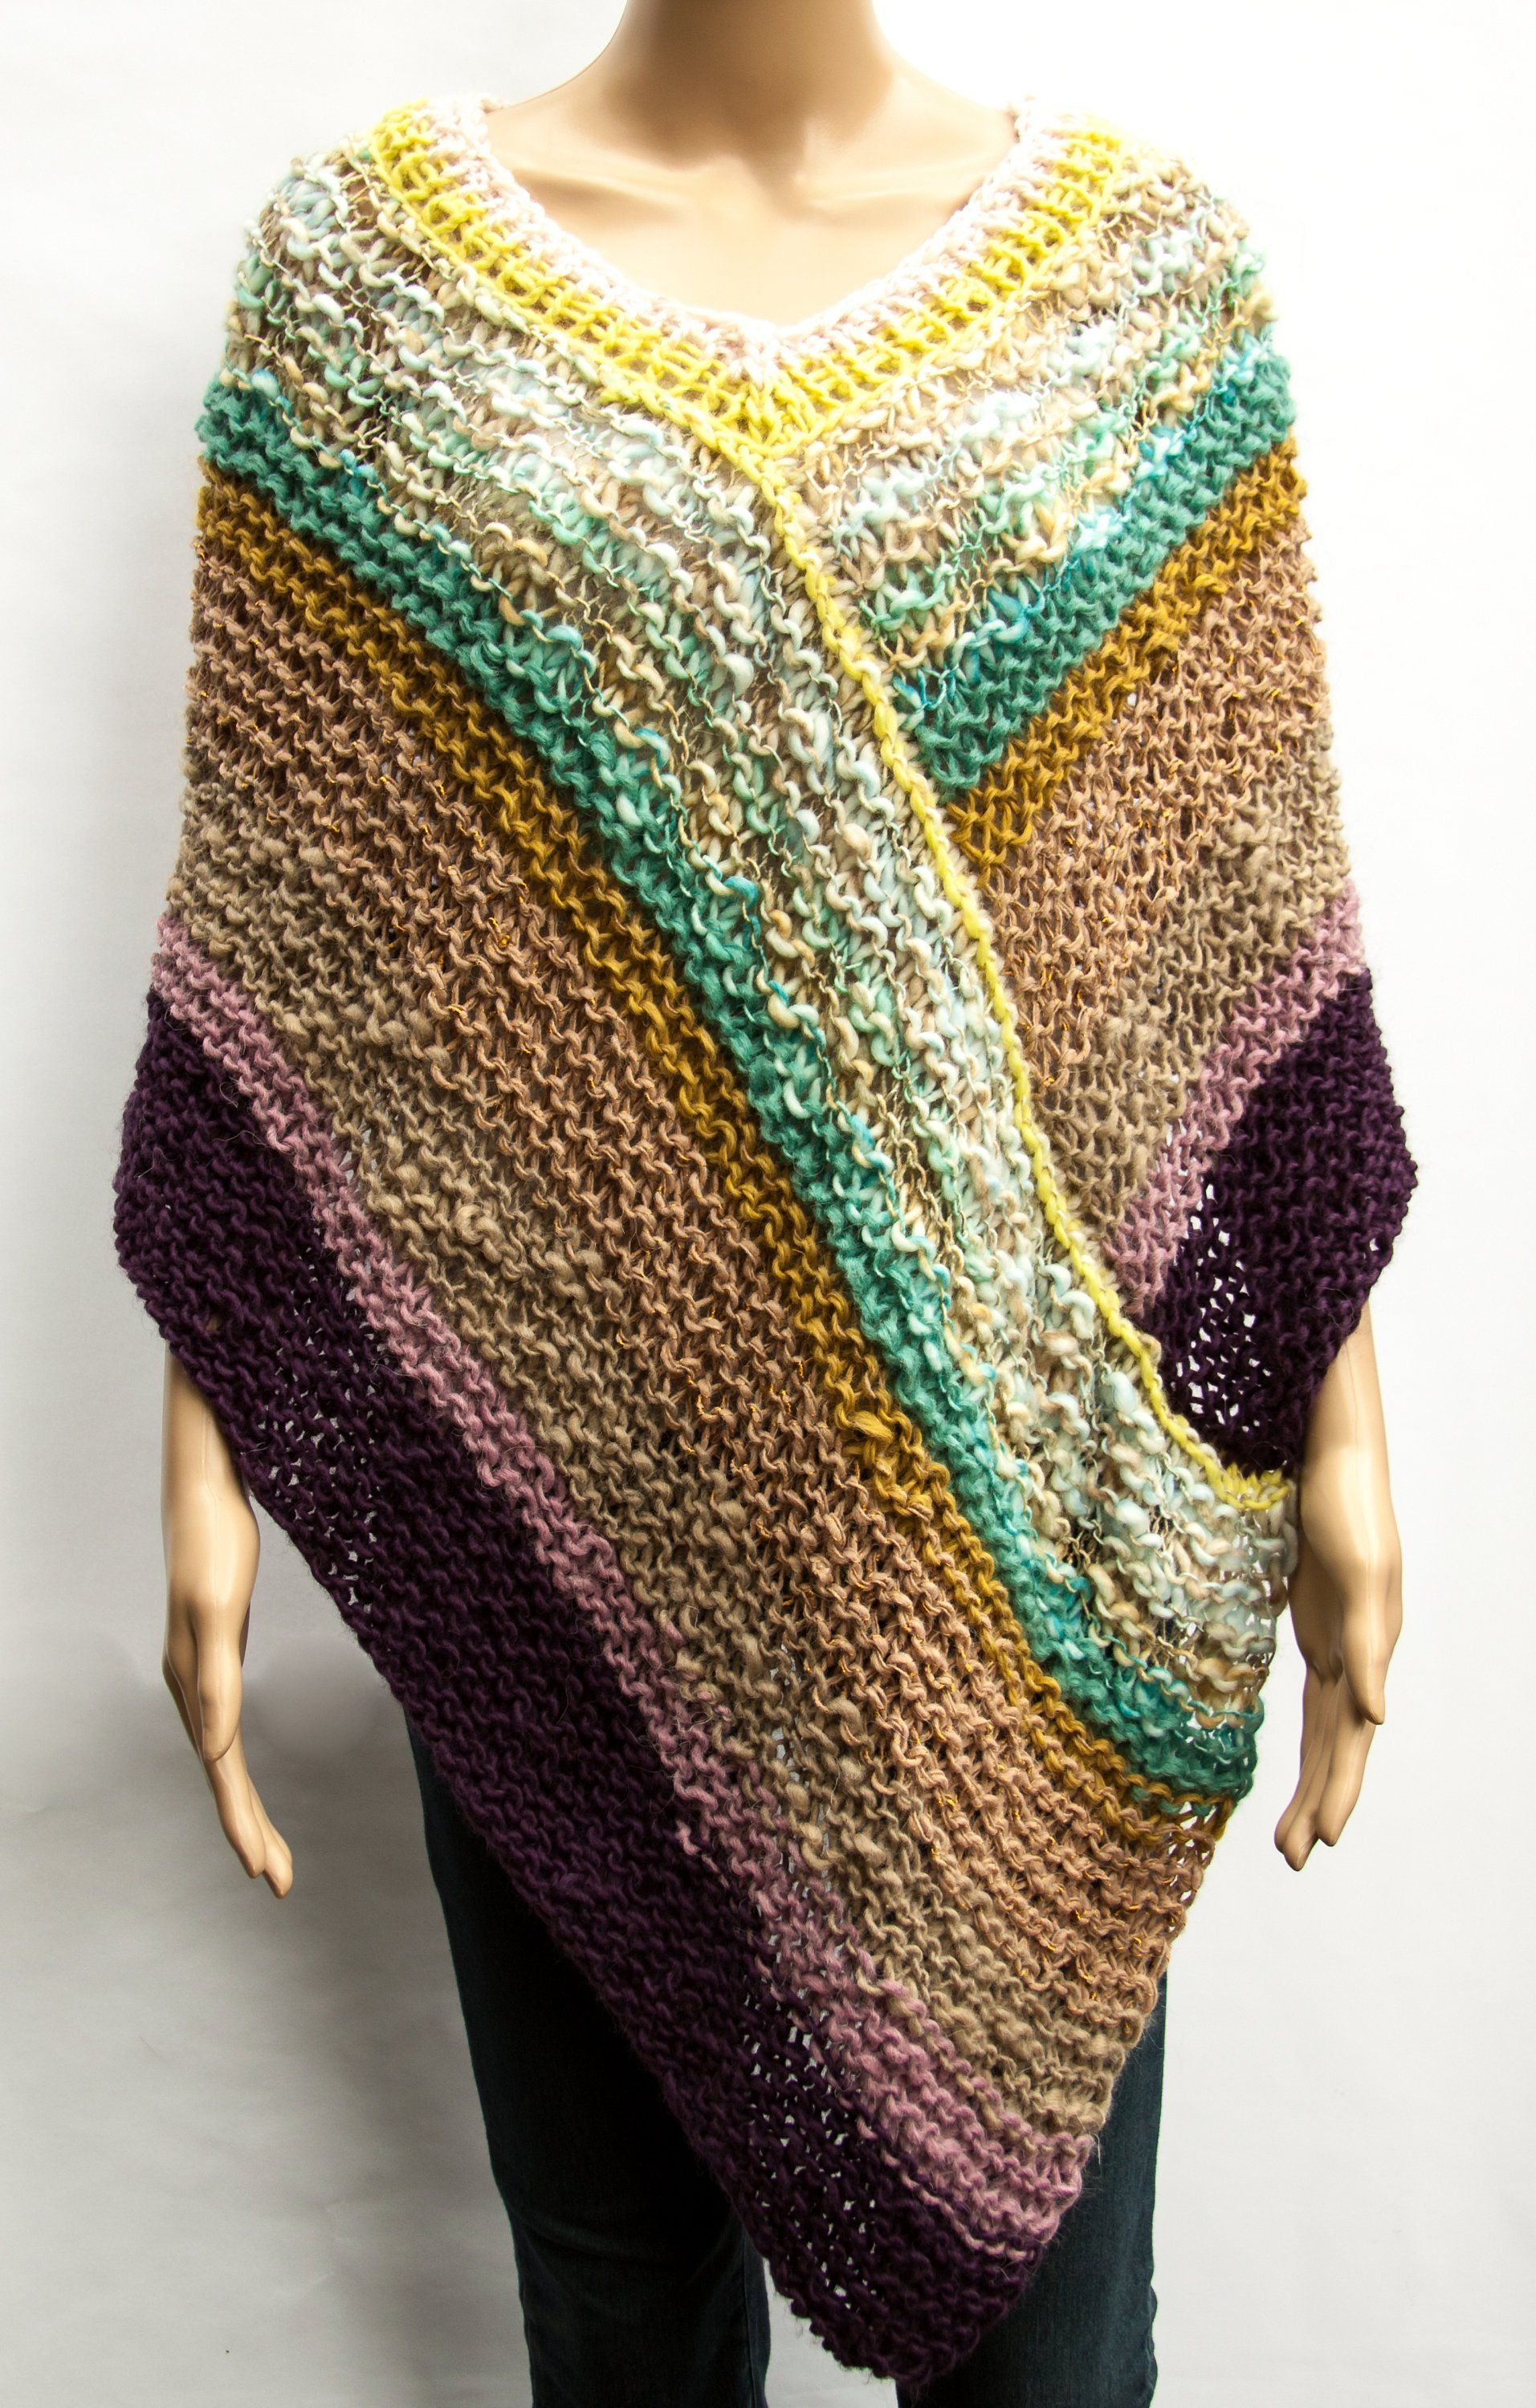 Poncho Boho Hippie Vagabond Oversize Hand knitted Chunky Slouchy knit Stripes multicolor Alpaca Merino wool Mohair